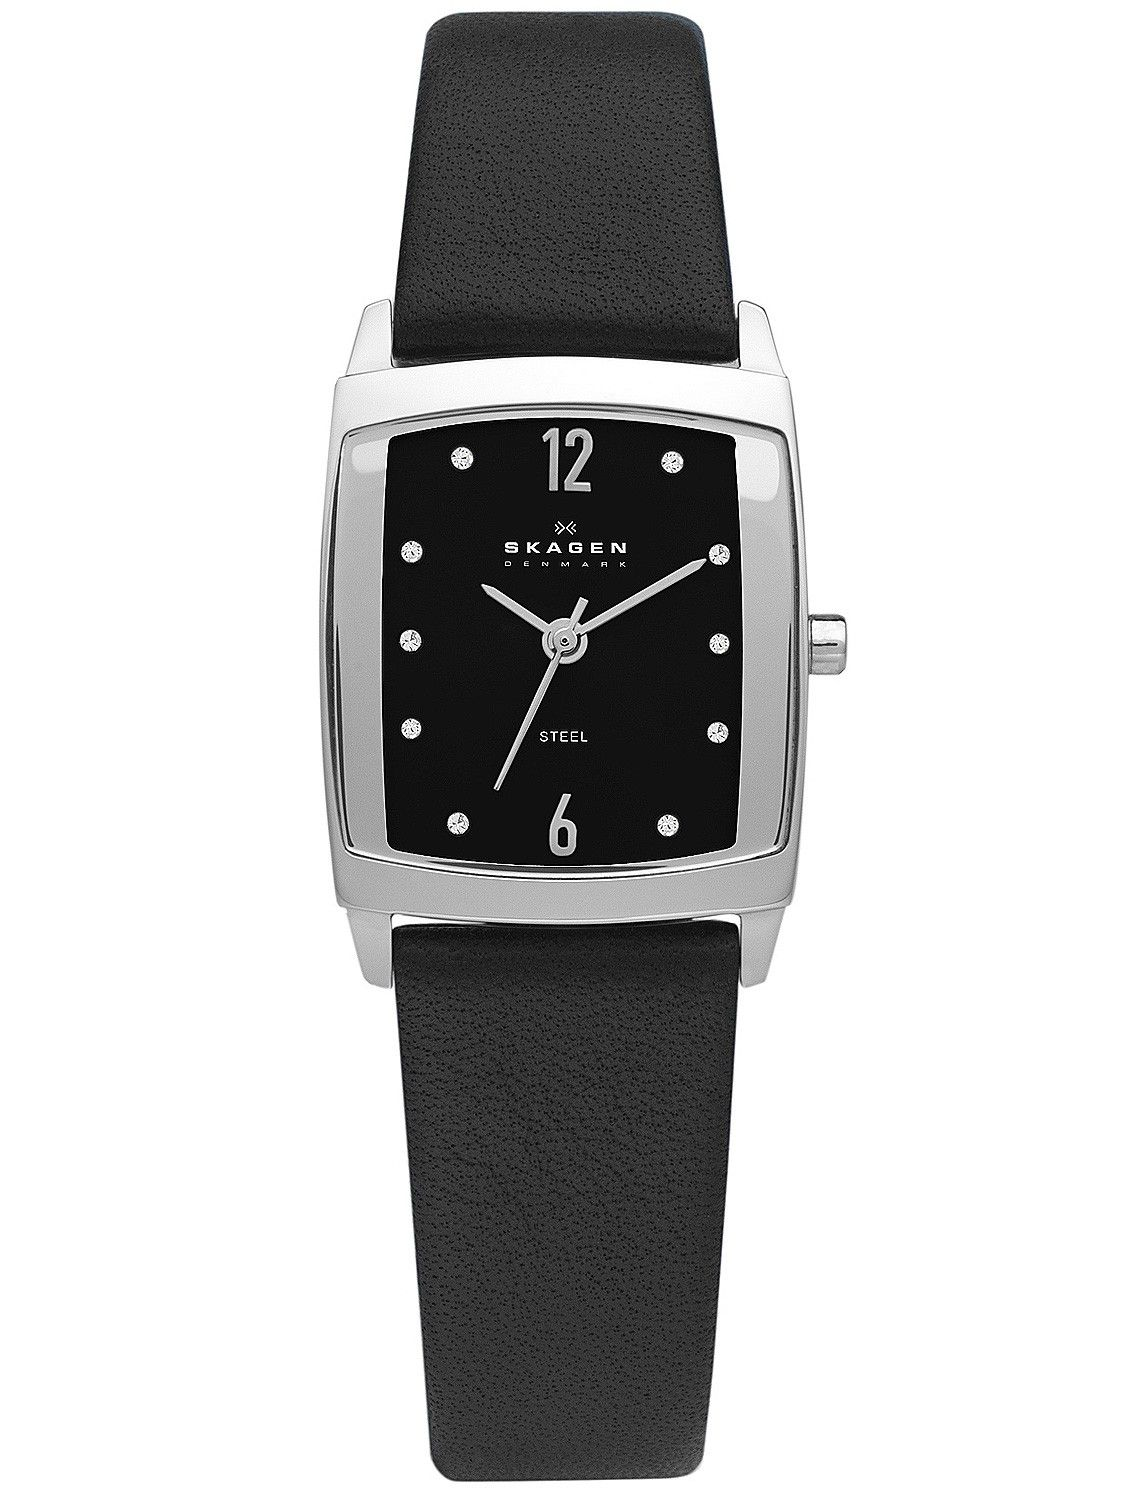 SKAGEN BLACK LEATHER MENS WATCH - Masculinity and minimalism in a modern professional style. Featuring a rectangular silver tone case with black mirror borders enclosing a sandblasted black dial with steel sliver tone indicators. A genuine leather strap brings this professional style effectively together.  R1699.00 SA Only Buy Now http://www.watchrepublic.co.za/brand/skagen/men/skagen-black-leather-mens-watch http://www.watchrepublic.co.za